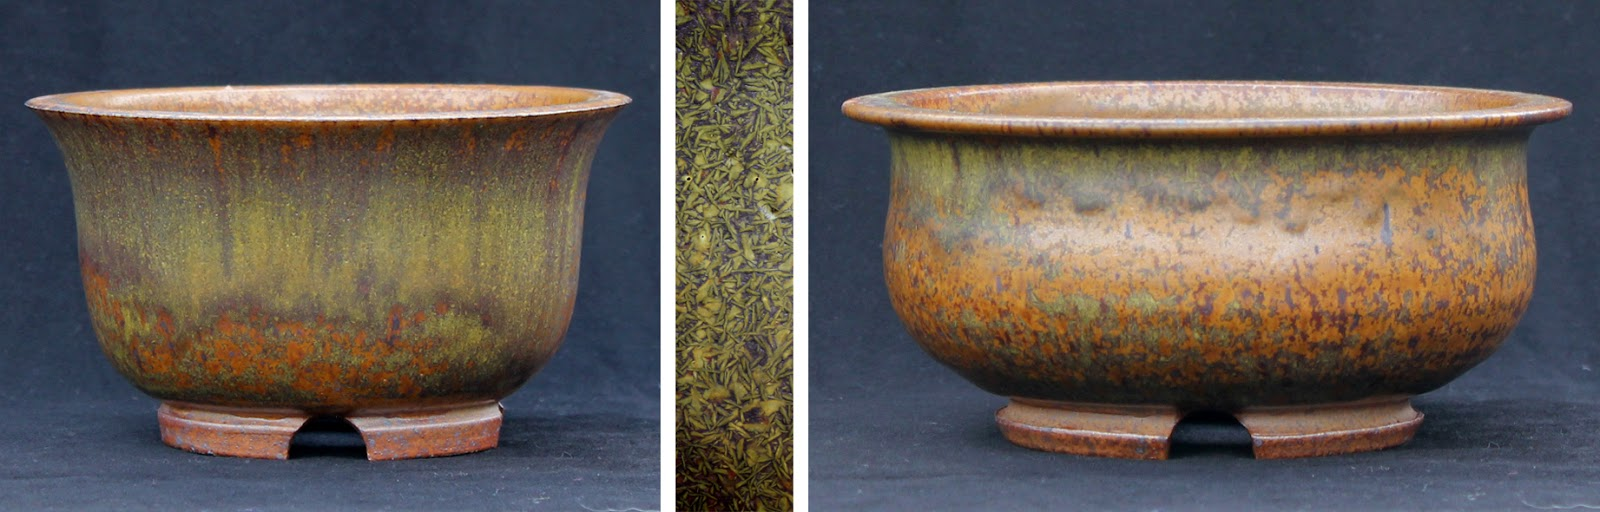 Kigawa39s Bonsai Blog At Last New Wood Fired Bonsai Pots